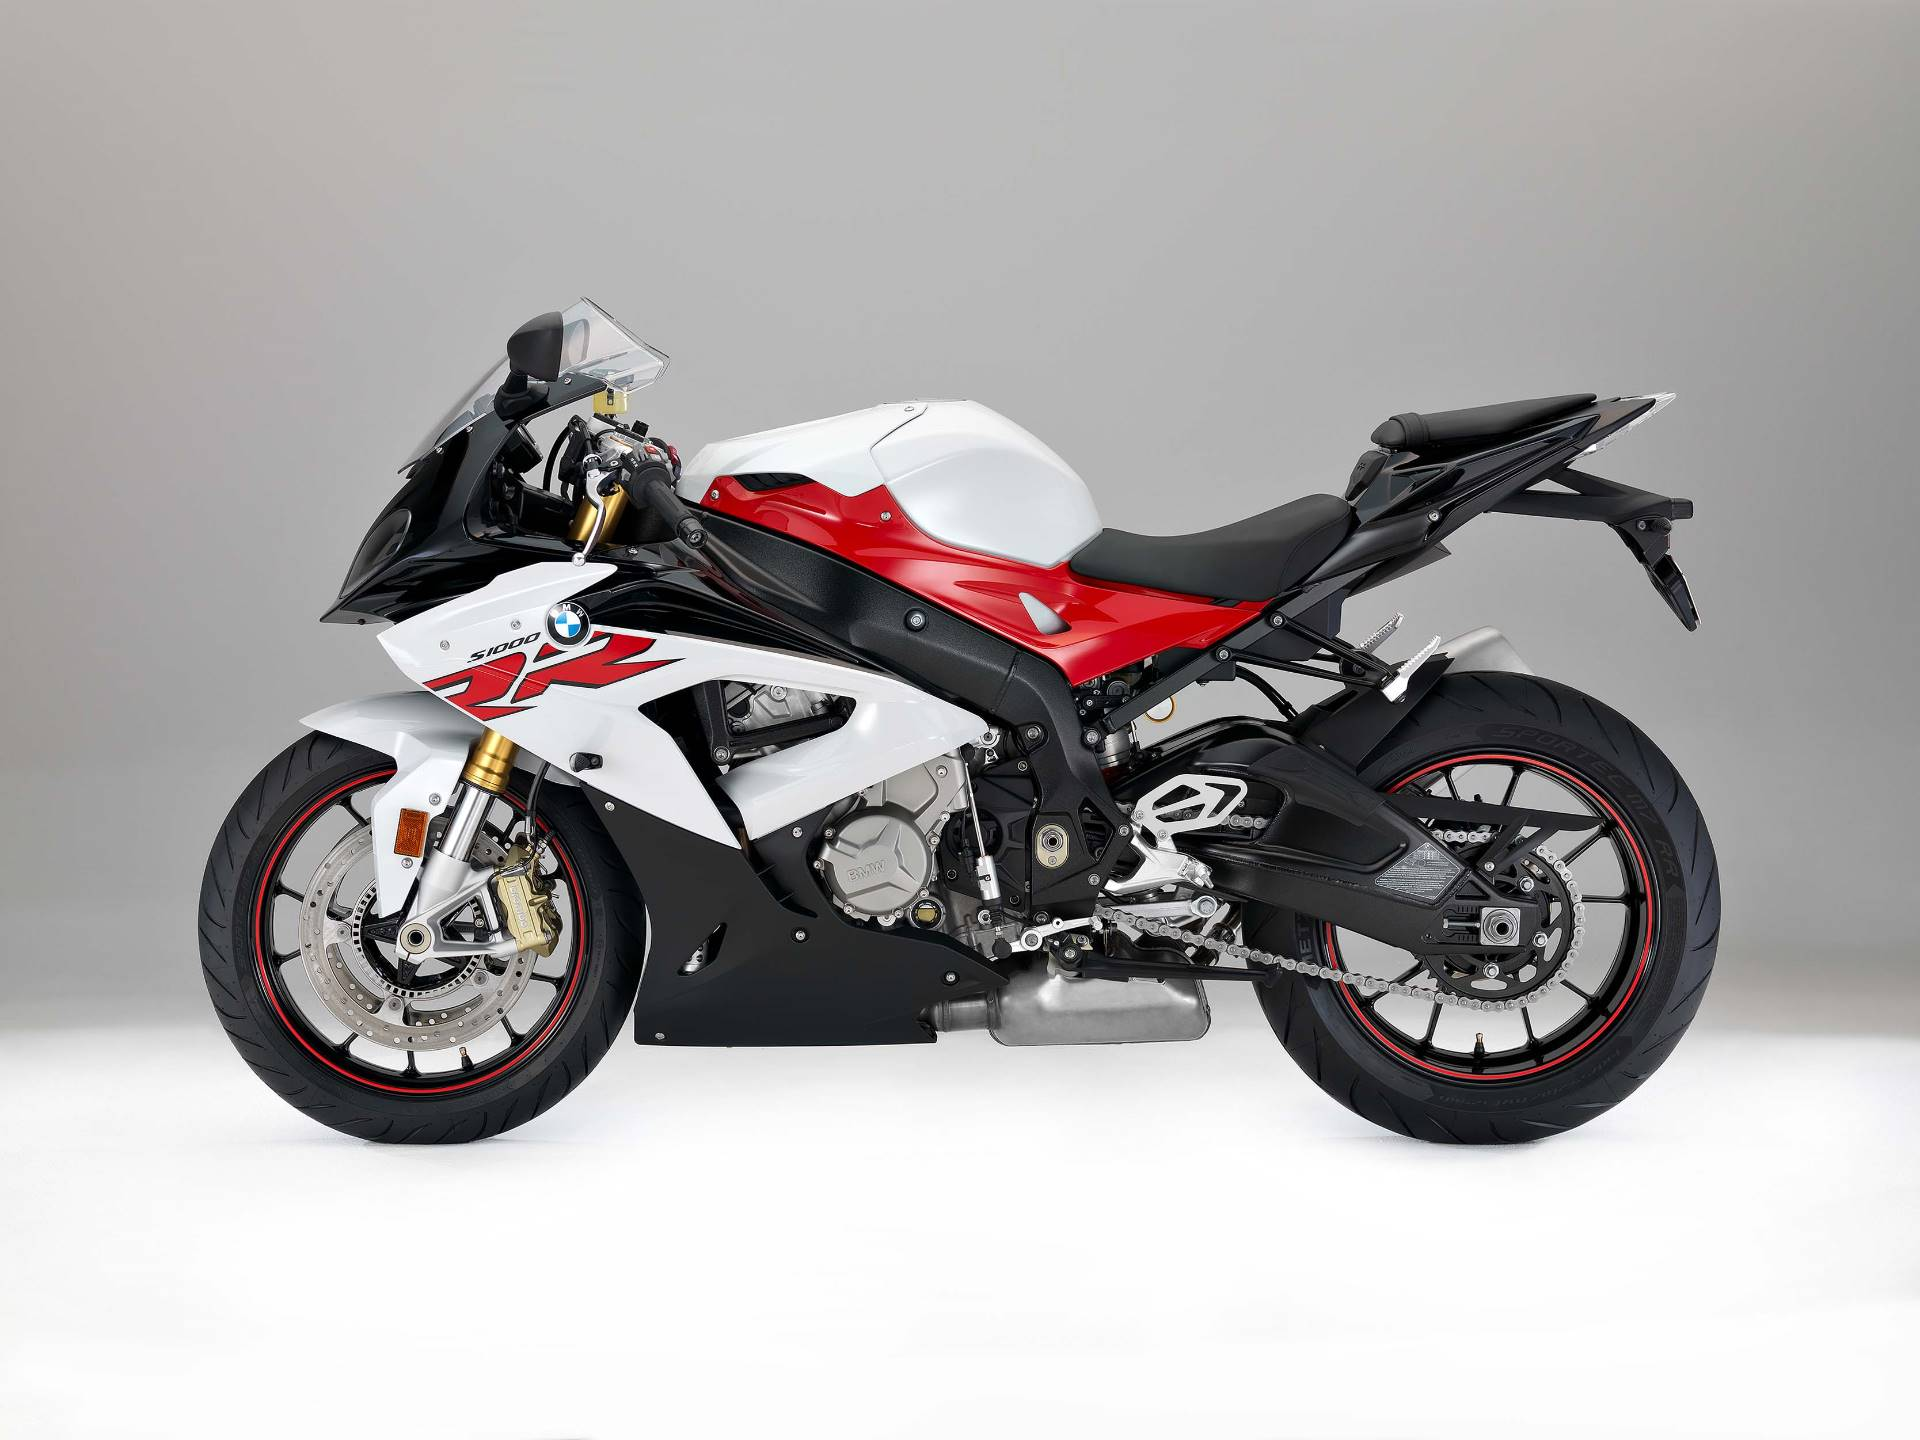 2017 bmw s1000rr for sale sarasota fl 6247. Black Bedroom Furniture Sets. Home Design Ideas